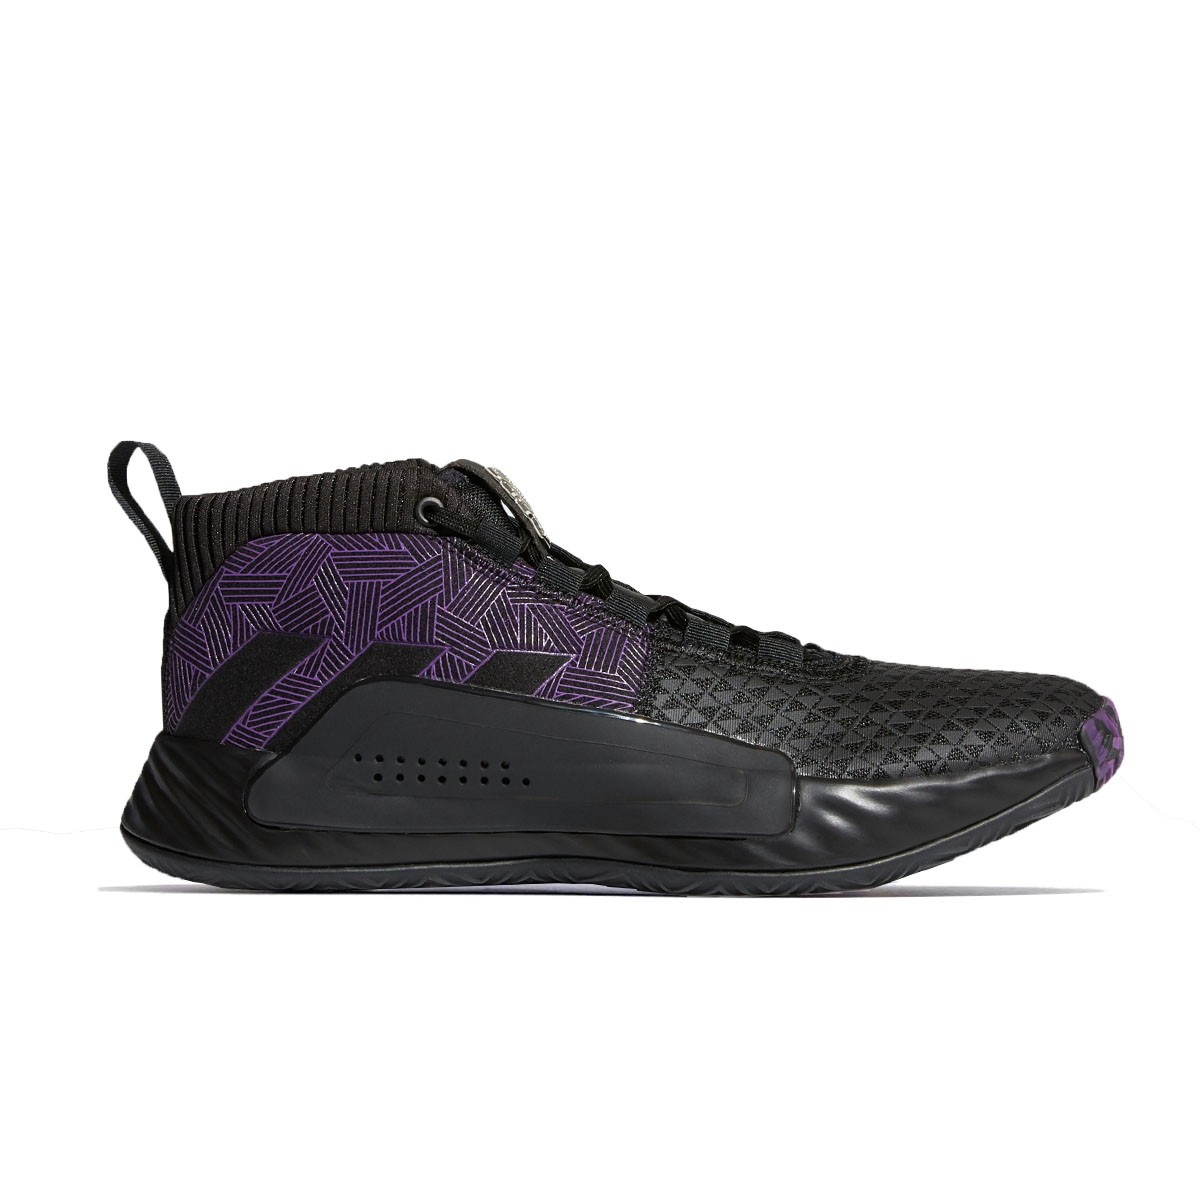 5cbfe140d58 Buy ADIDAS Dame 5 Jr  Black Panther  Basketball shoes   sneakers